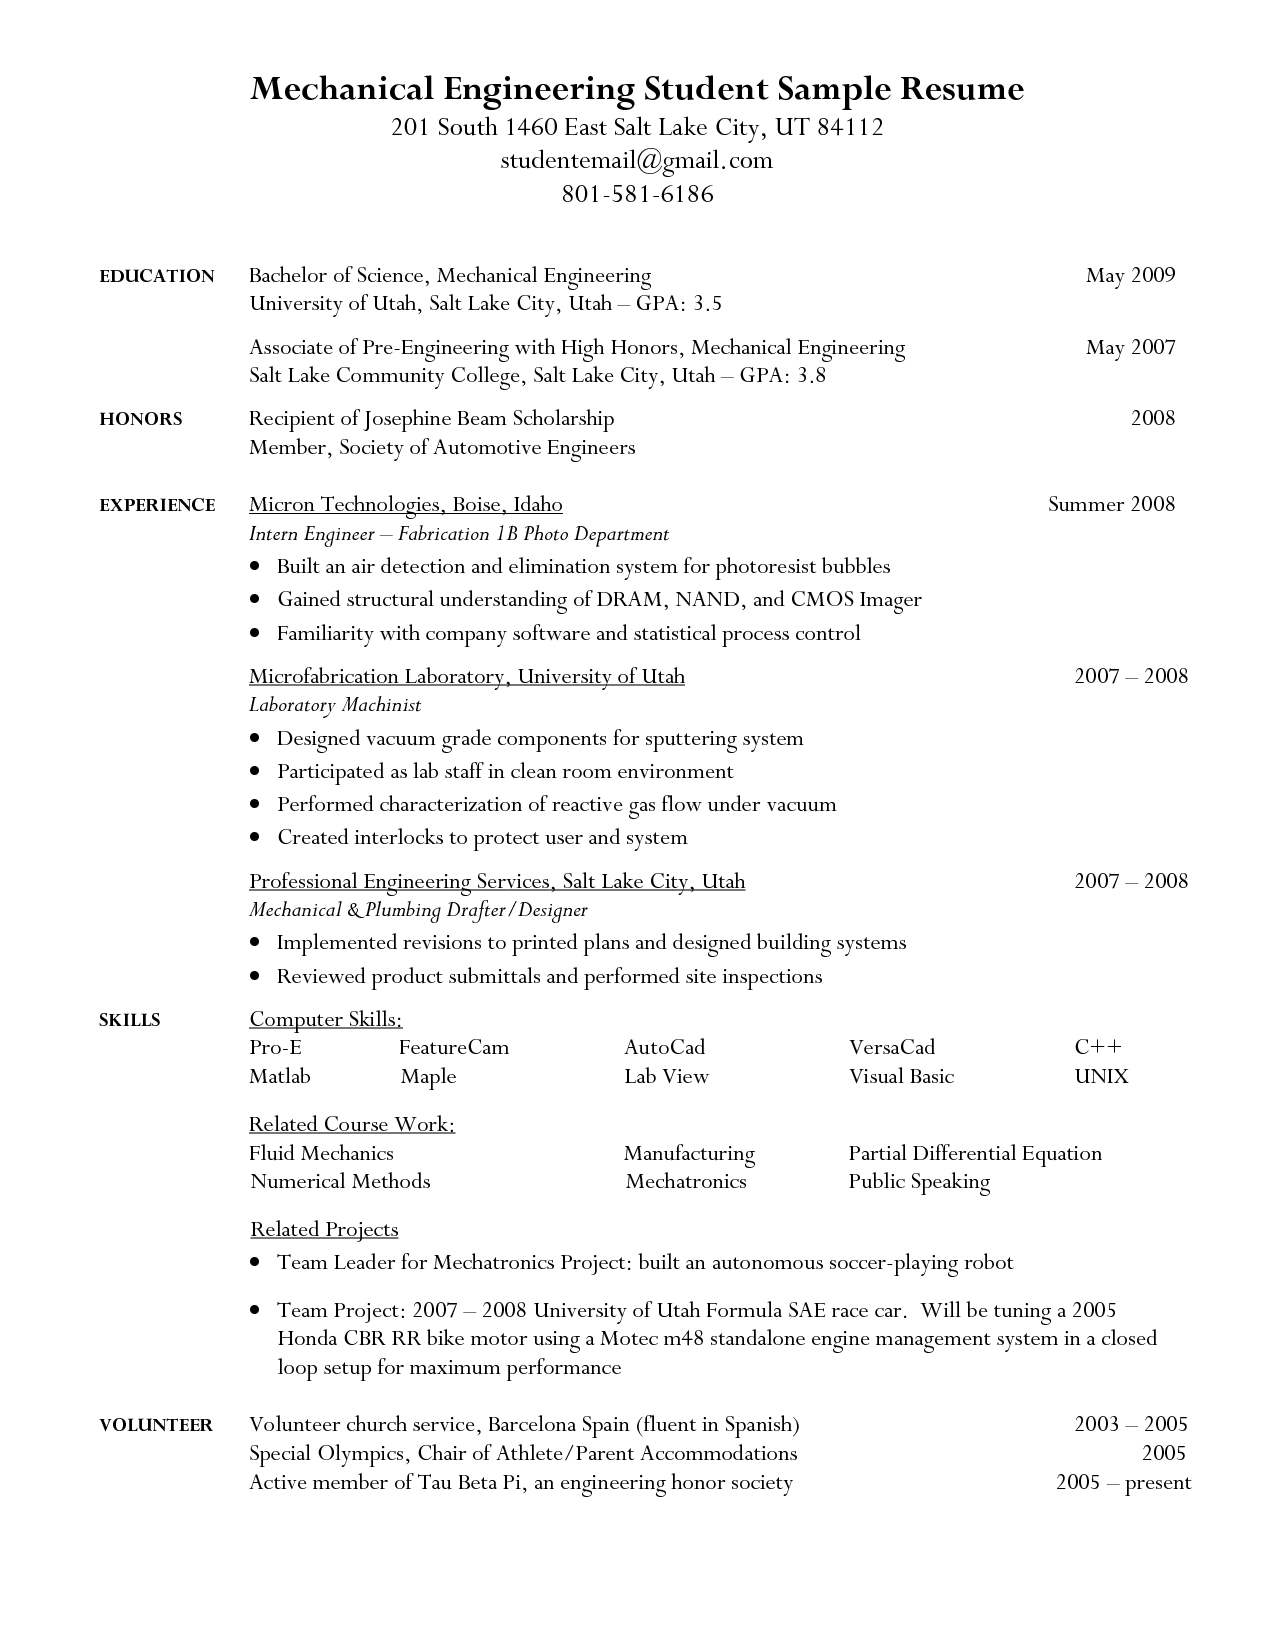 resume format for engineering student